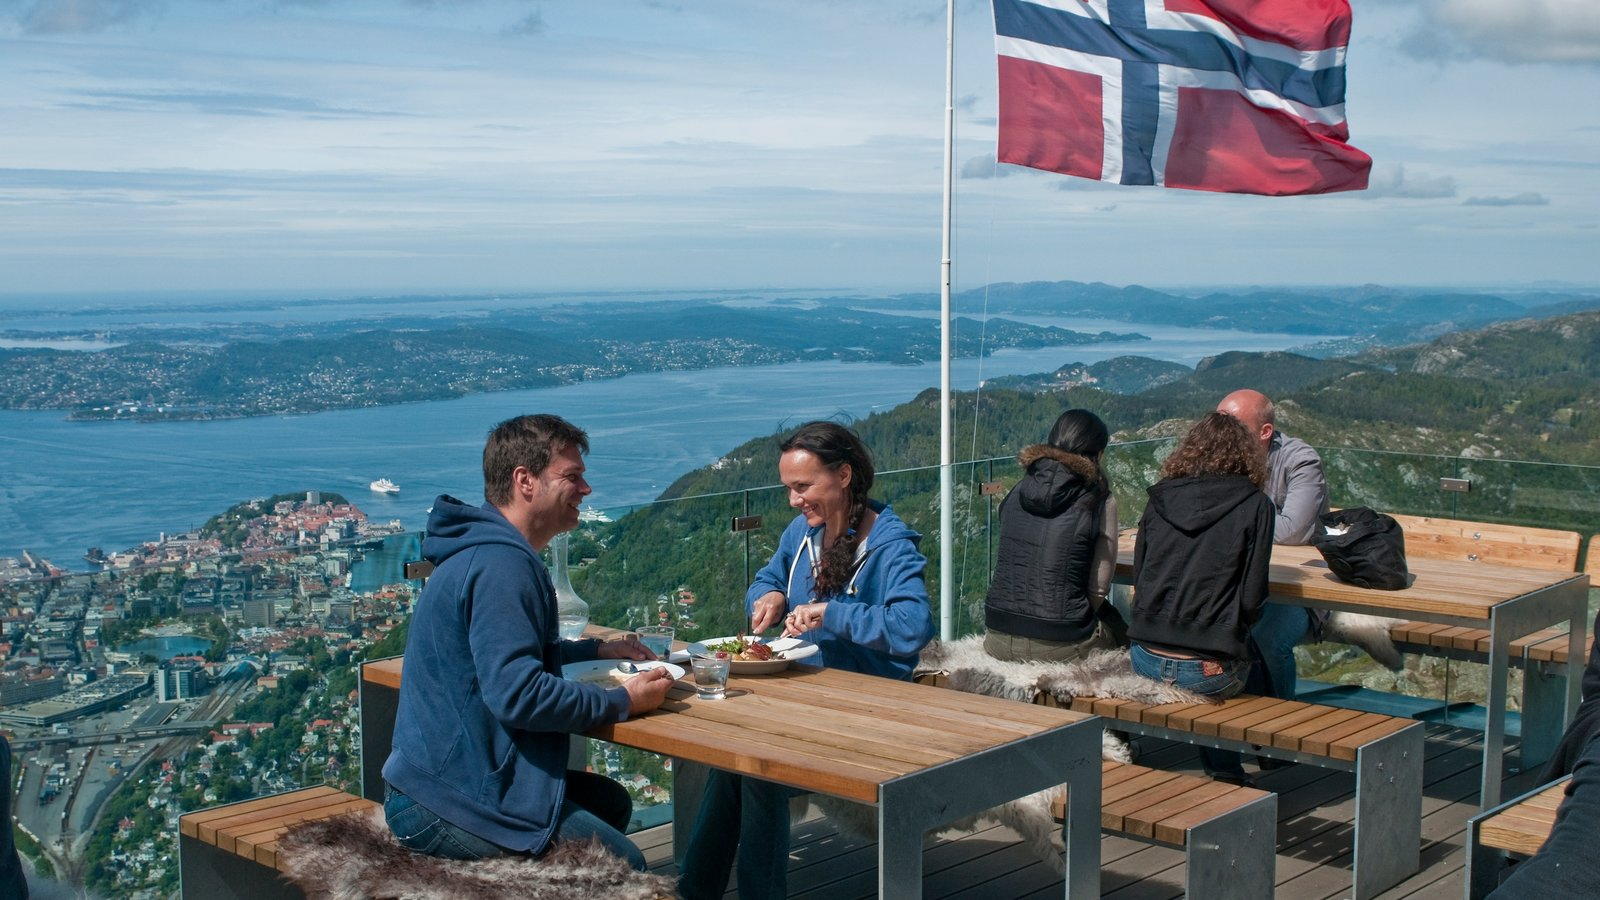 Ulriken Cable Car featuring outdoor eating, views and general coastal views